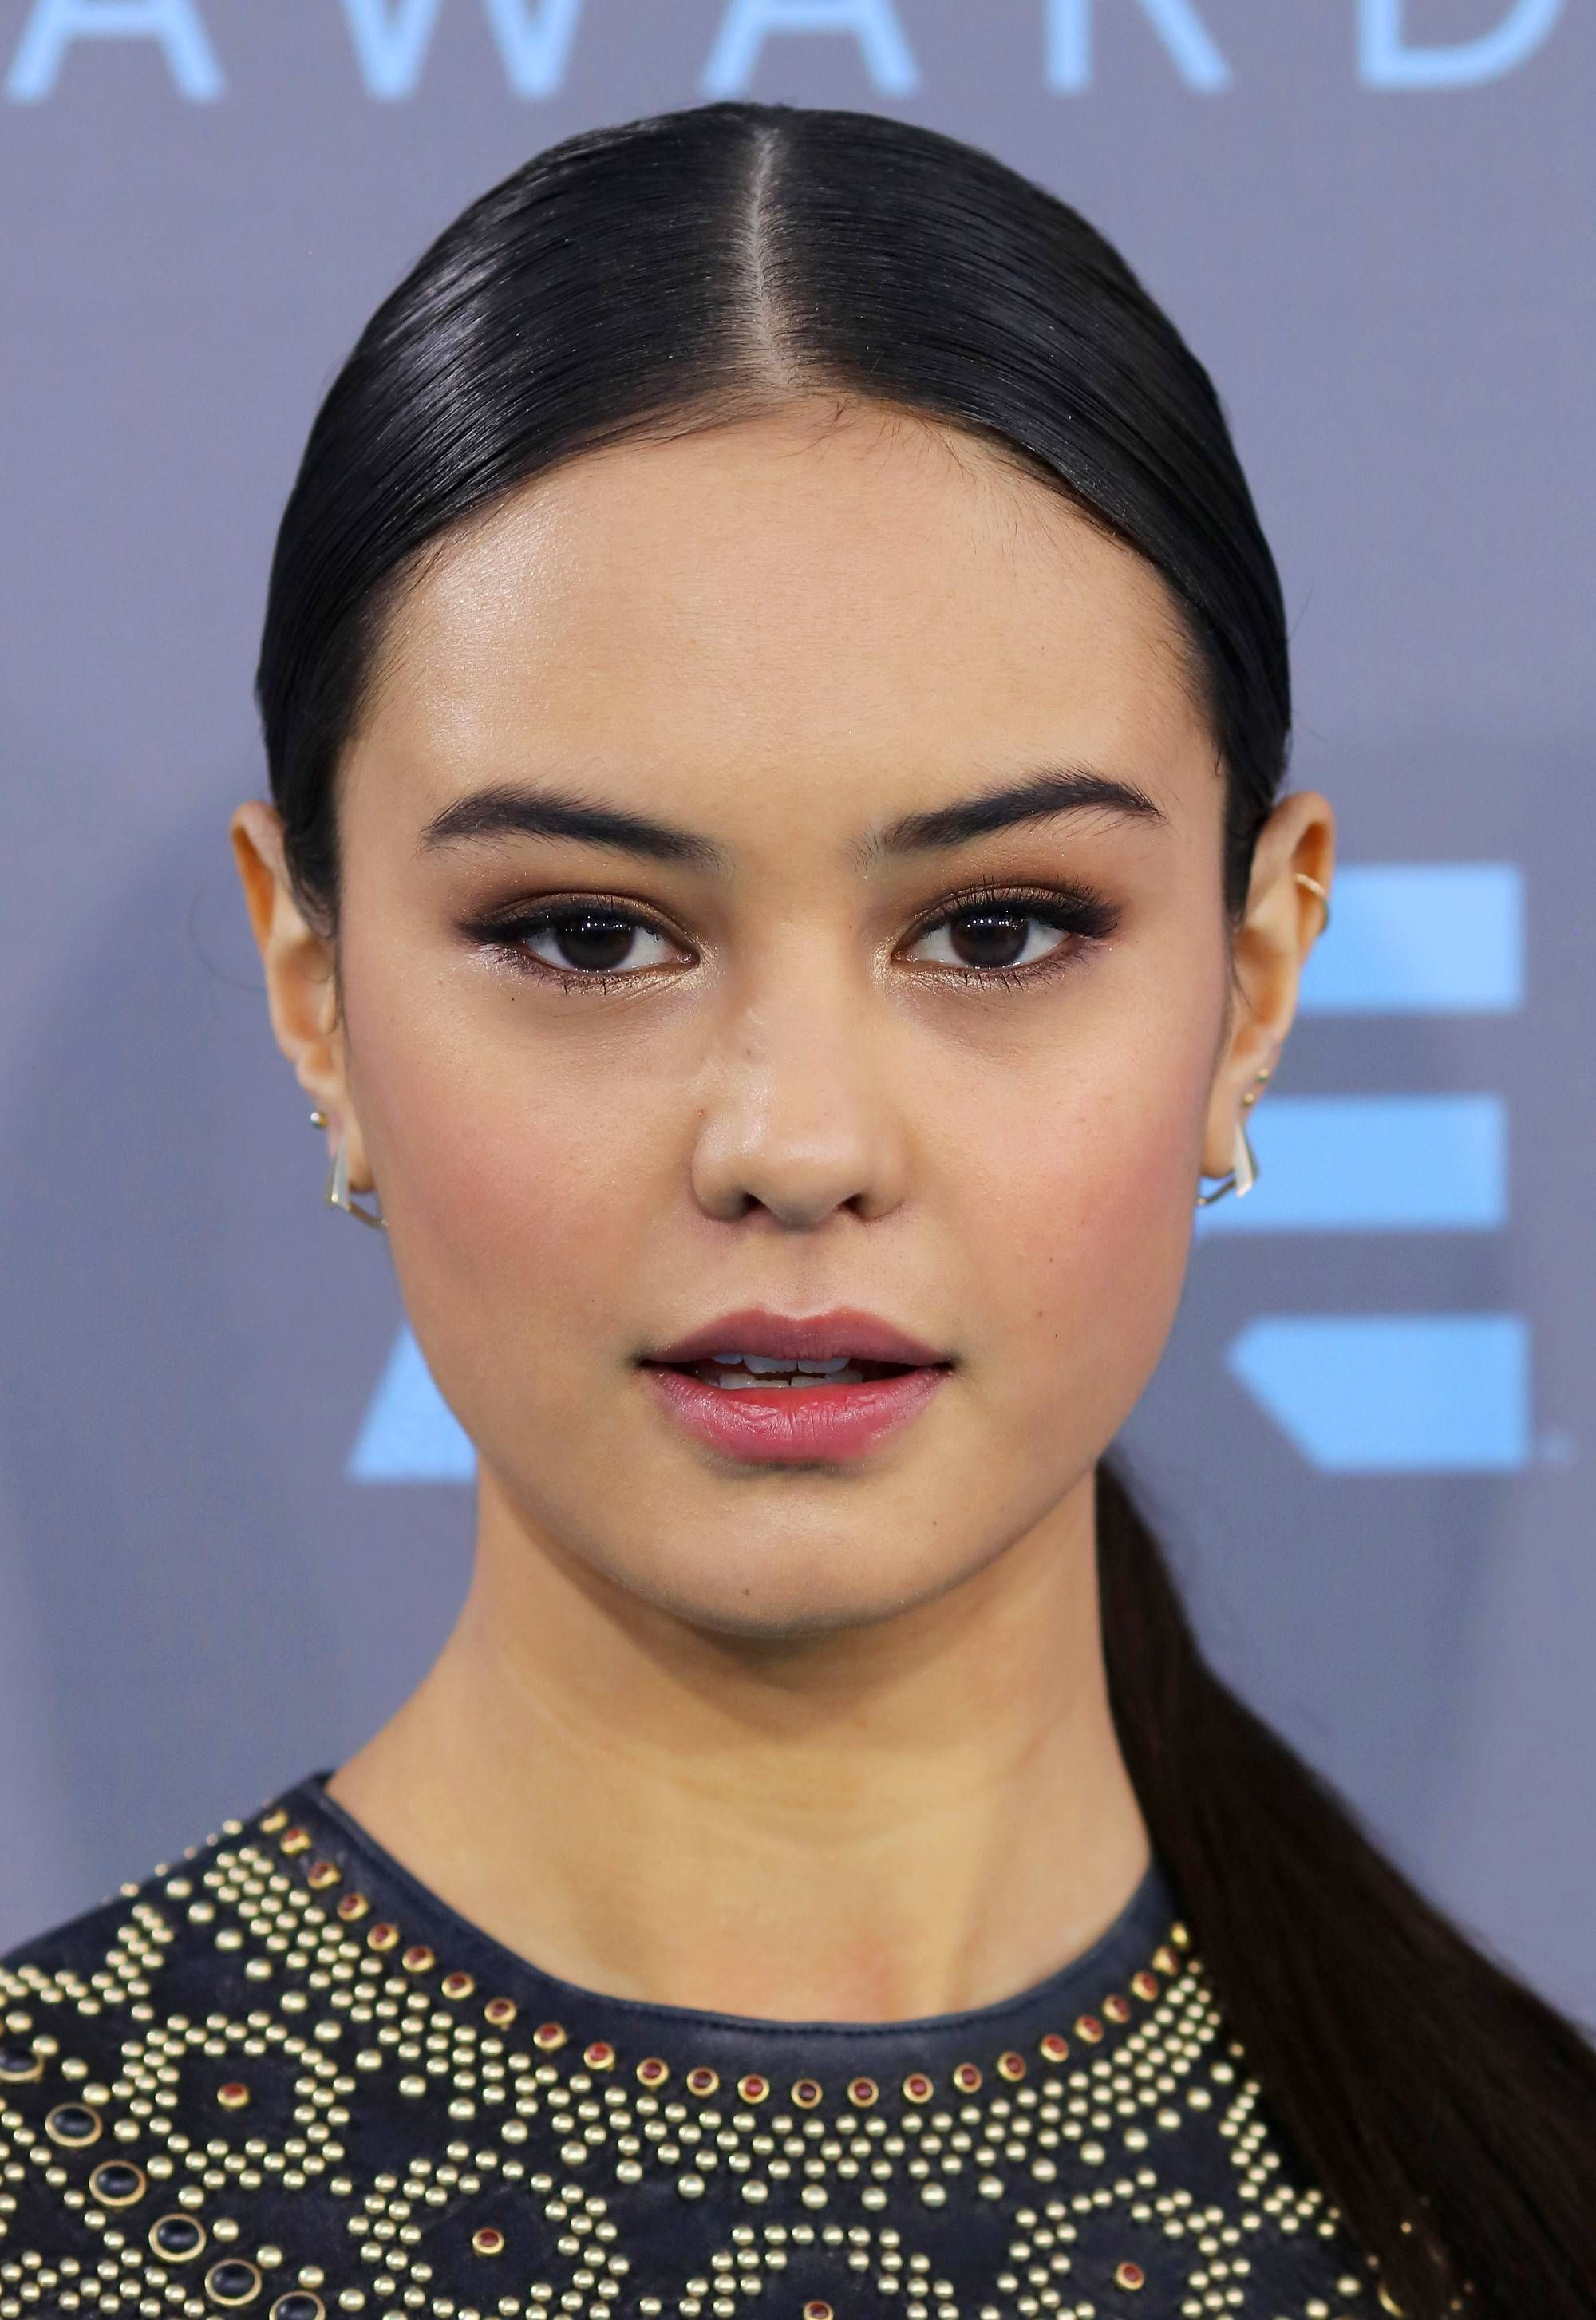 Courtney Eaton nudes (57 foto and video), Sexy, Fappening, Instagram, cleavage 2019